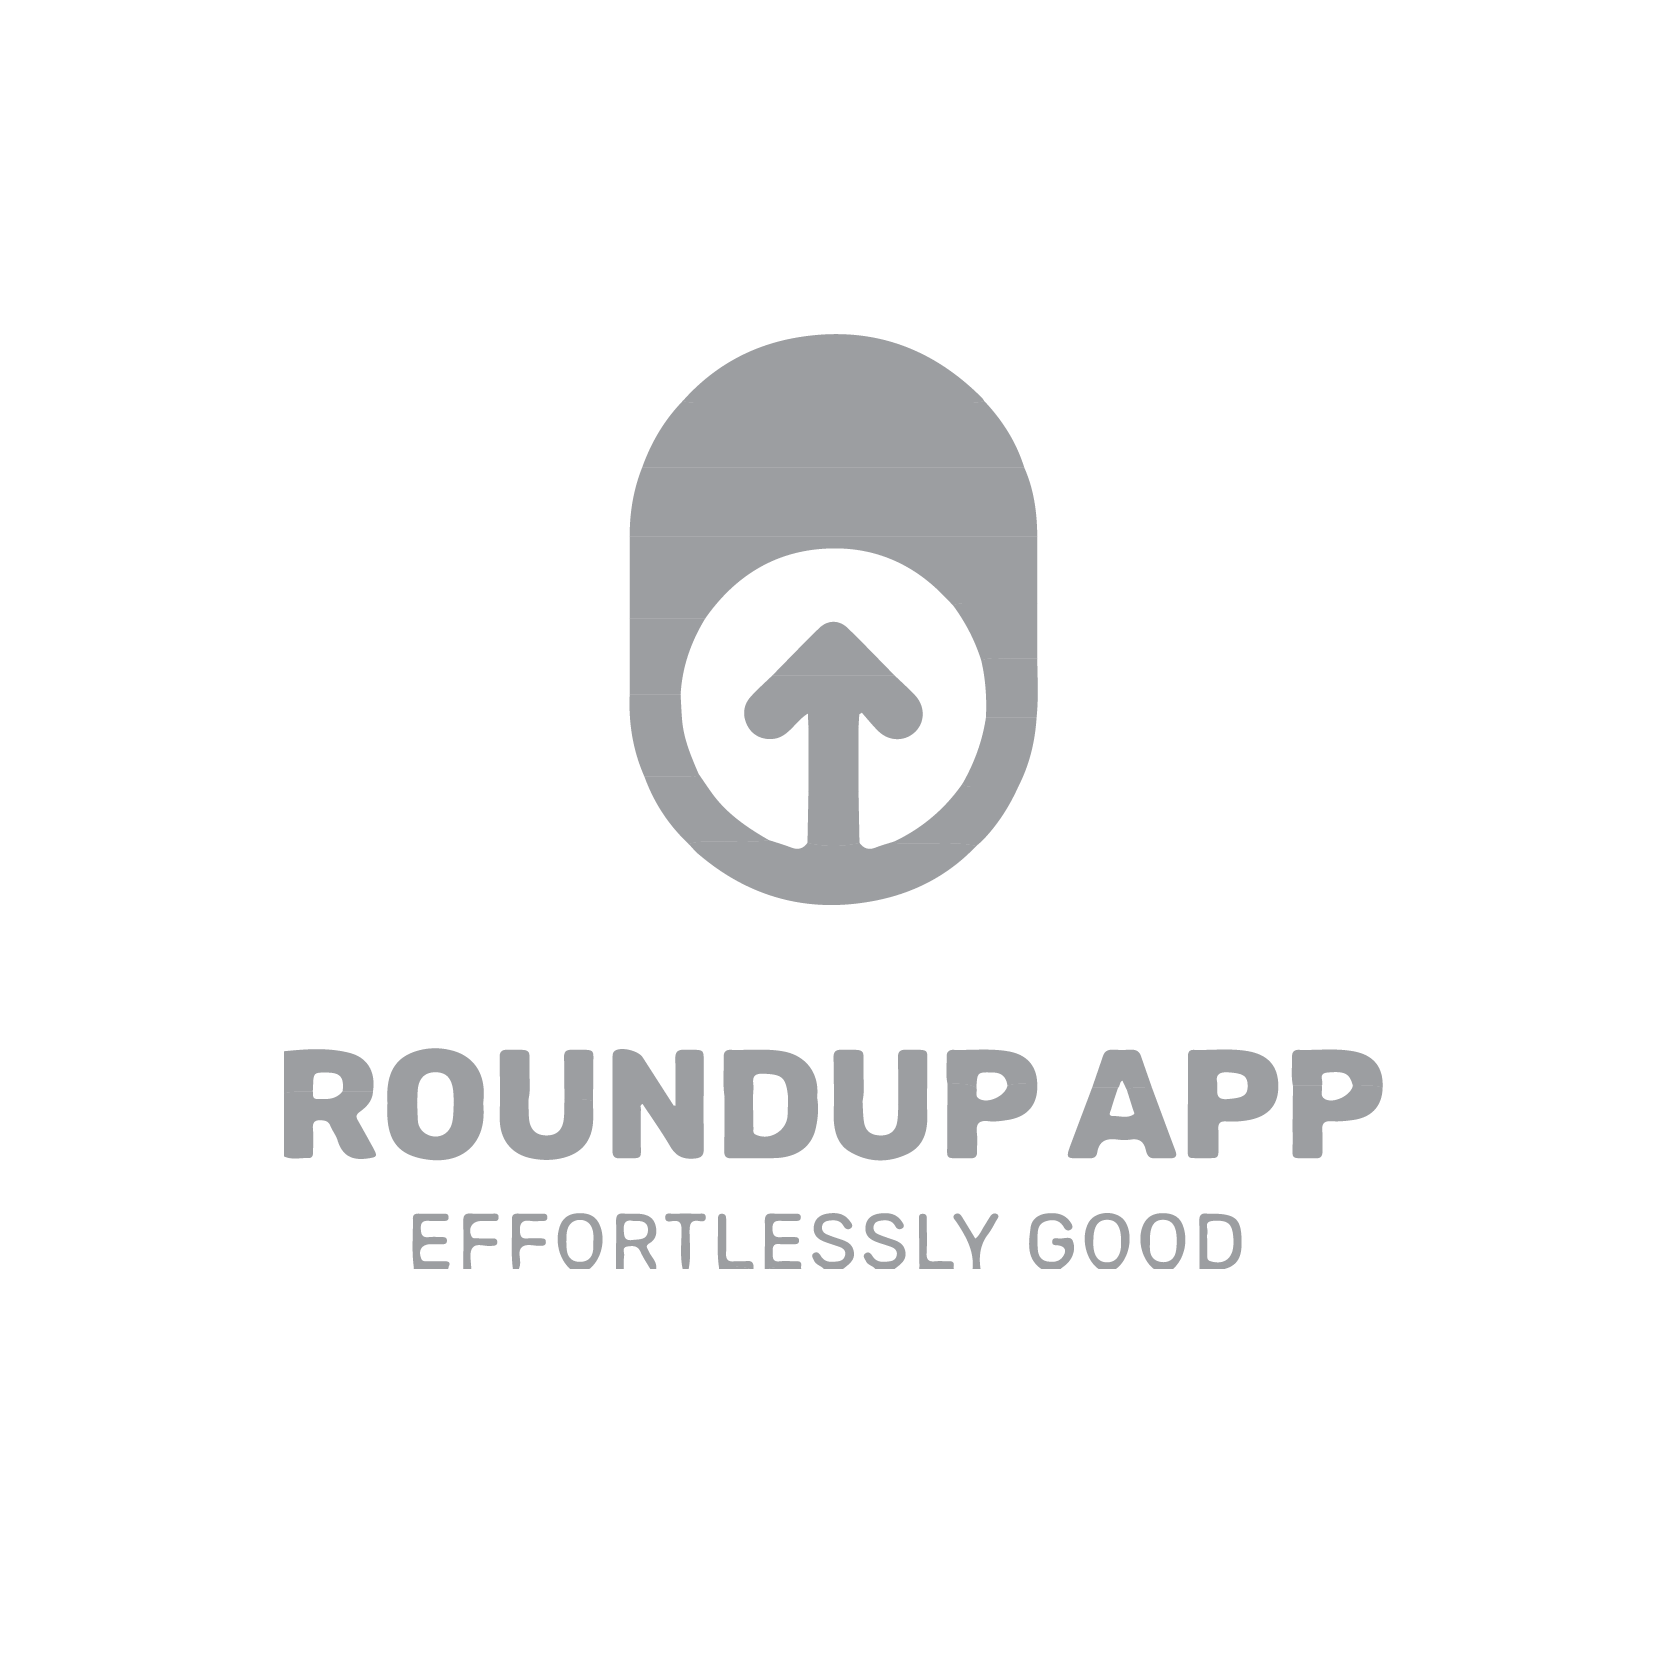 Register with the Roundup App, select Wags & Walks and each purchase you make will be rounded up to the next dollar and your change will be donated to Wags & Walks!   Register here